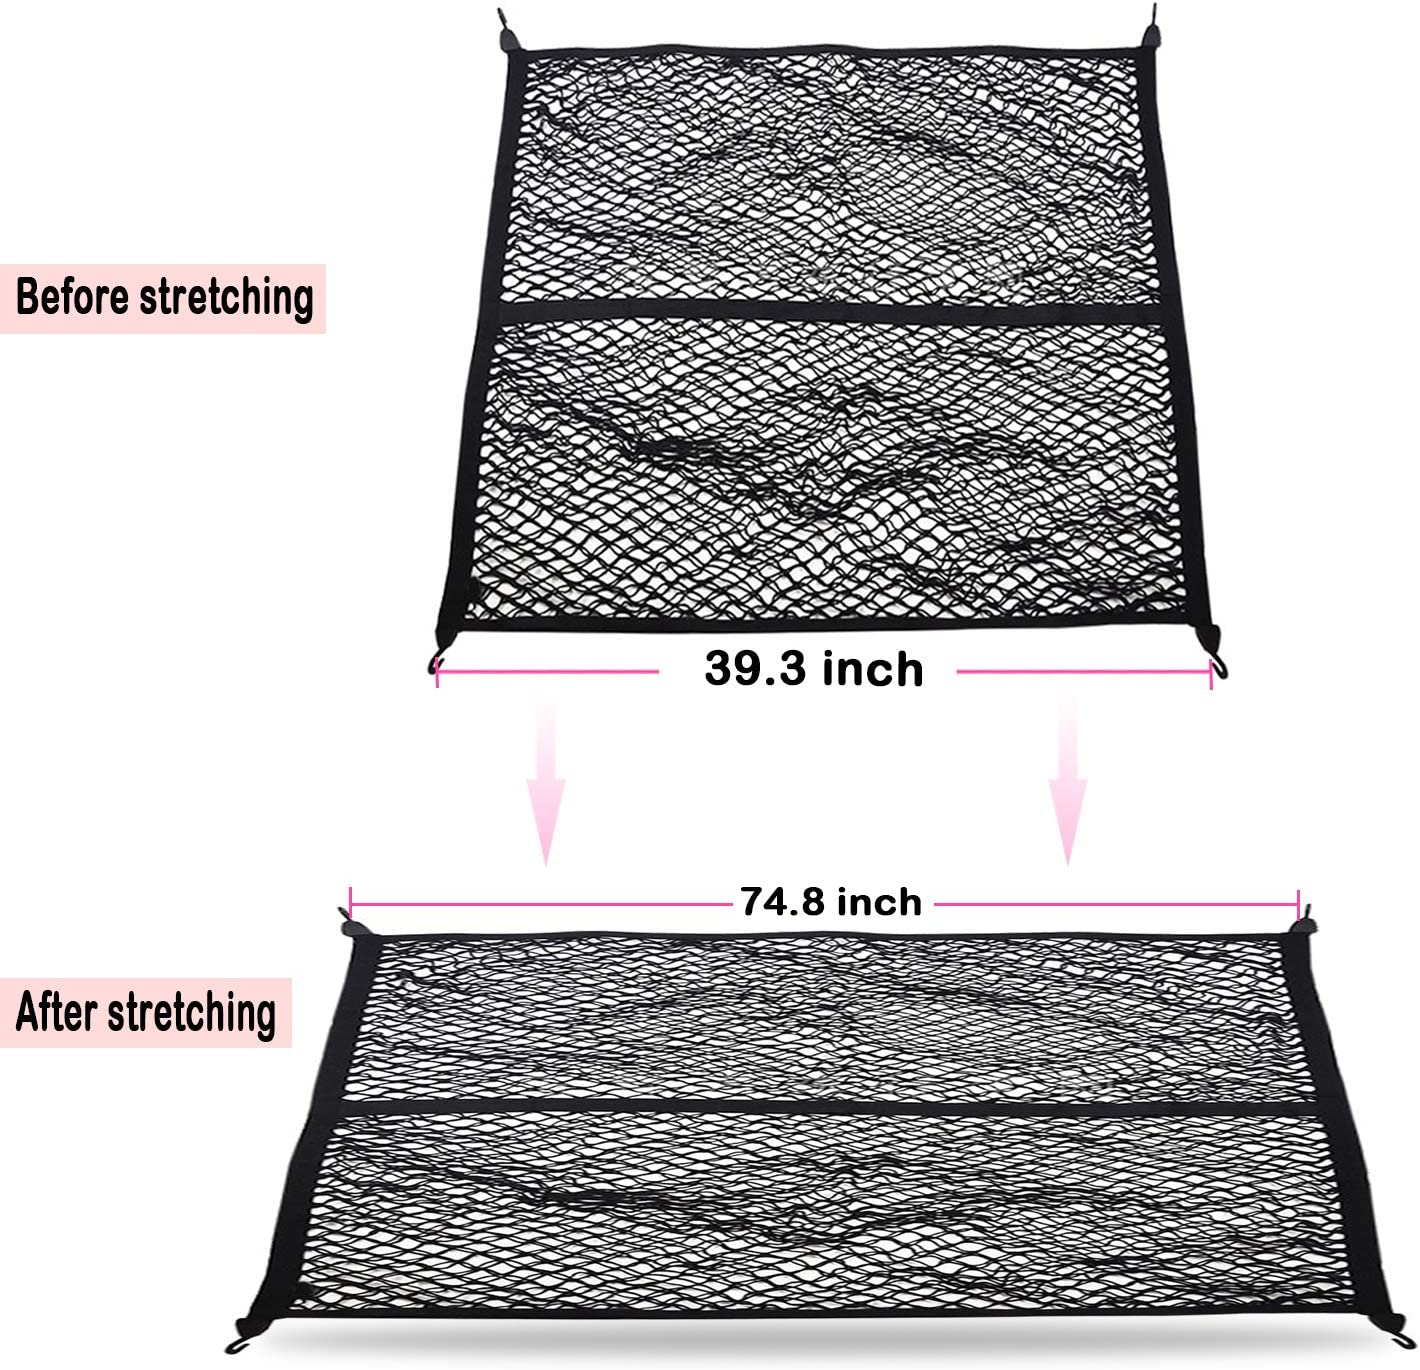 omotor Cargo Net for 2020 Jeep Gladiator JT,Double-net Rear Car Organizer Net Truck Net Stretchable,Suitable for Most Trucks